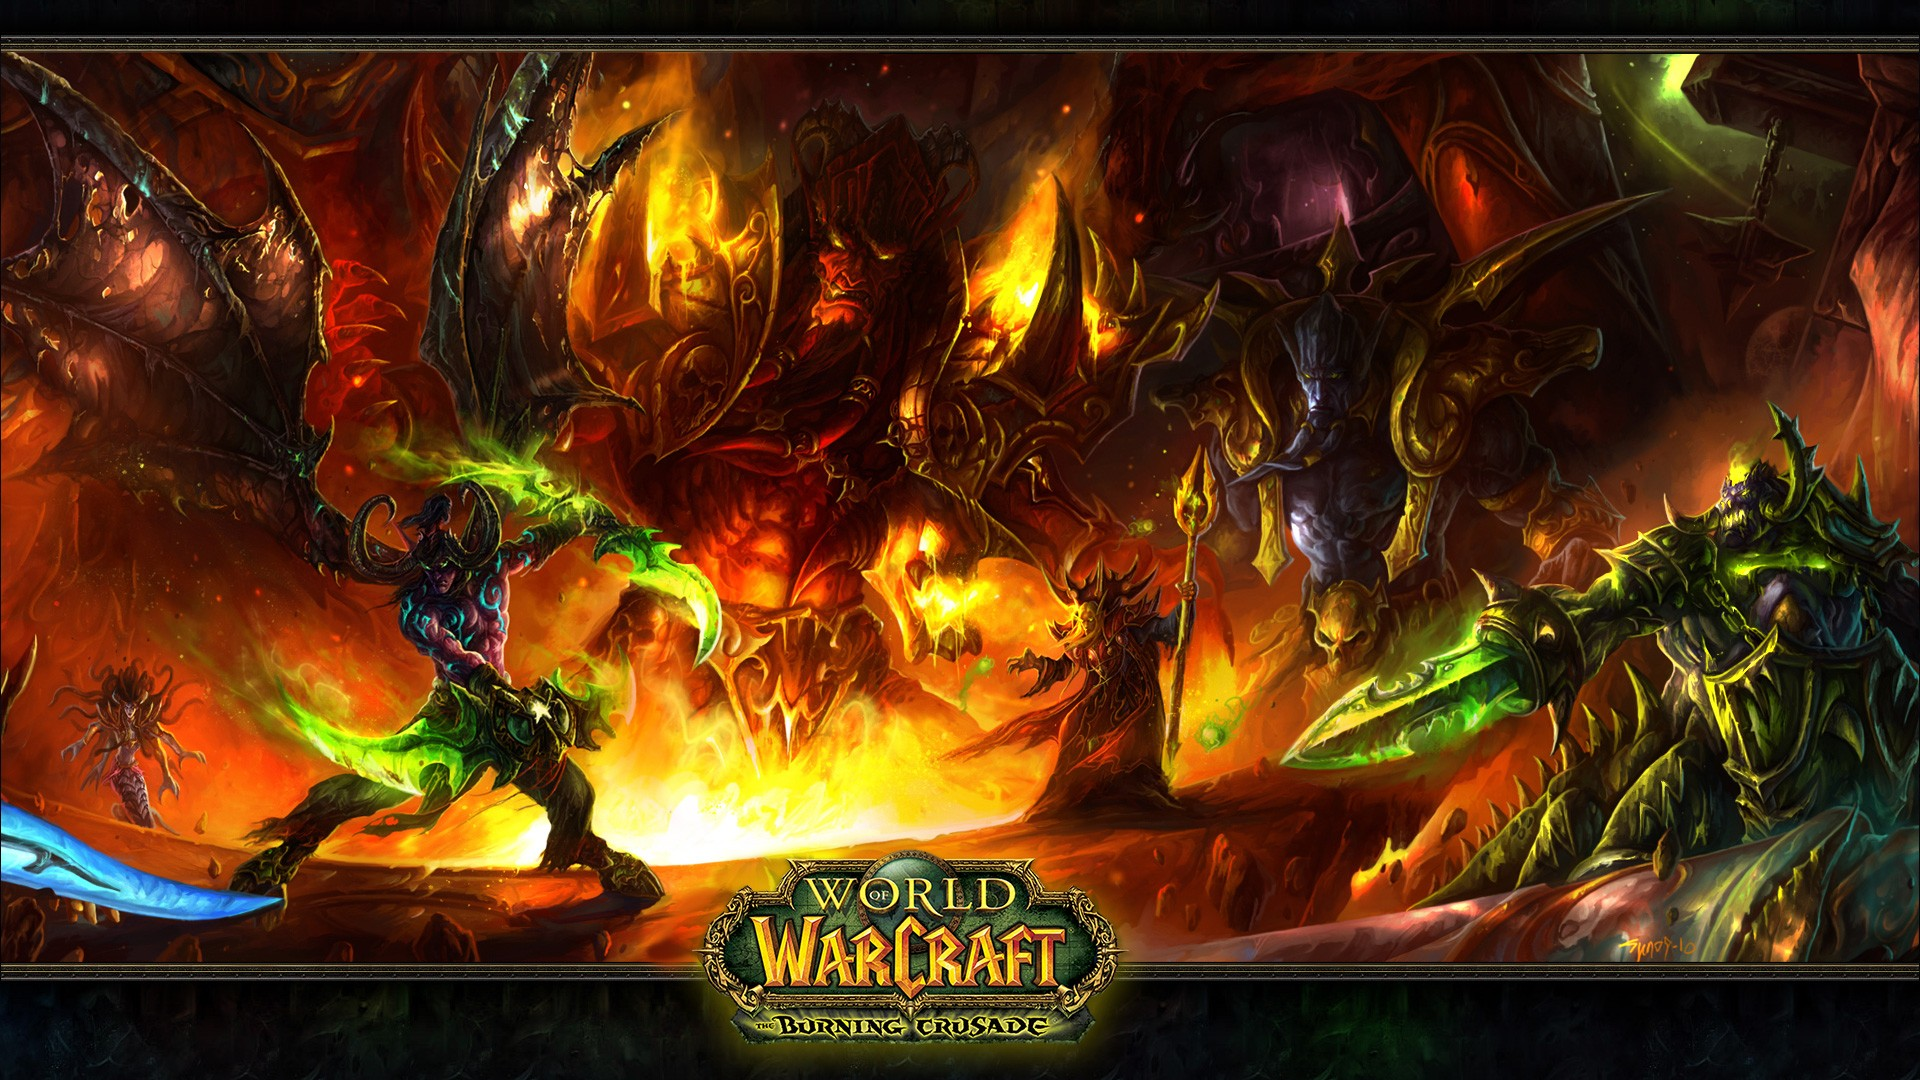 World Of Warcraft Wallpapers High Quality  PixelsTalk World Of Warcraft Wallpapers, World Of Warcraft Wallpapers for 1920x1080